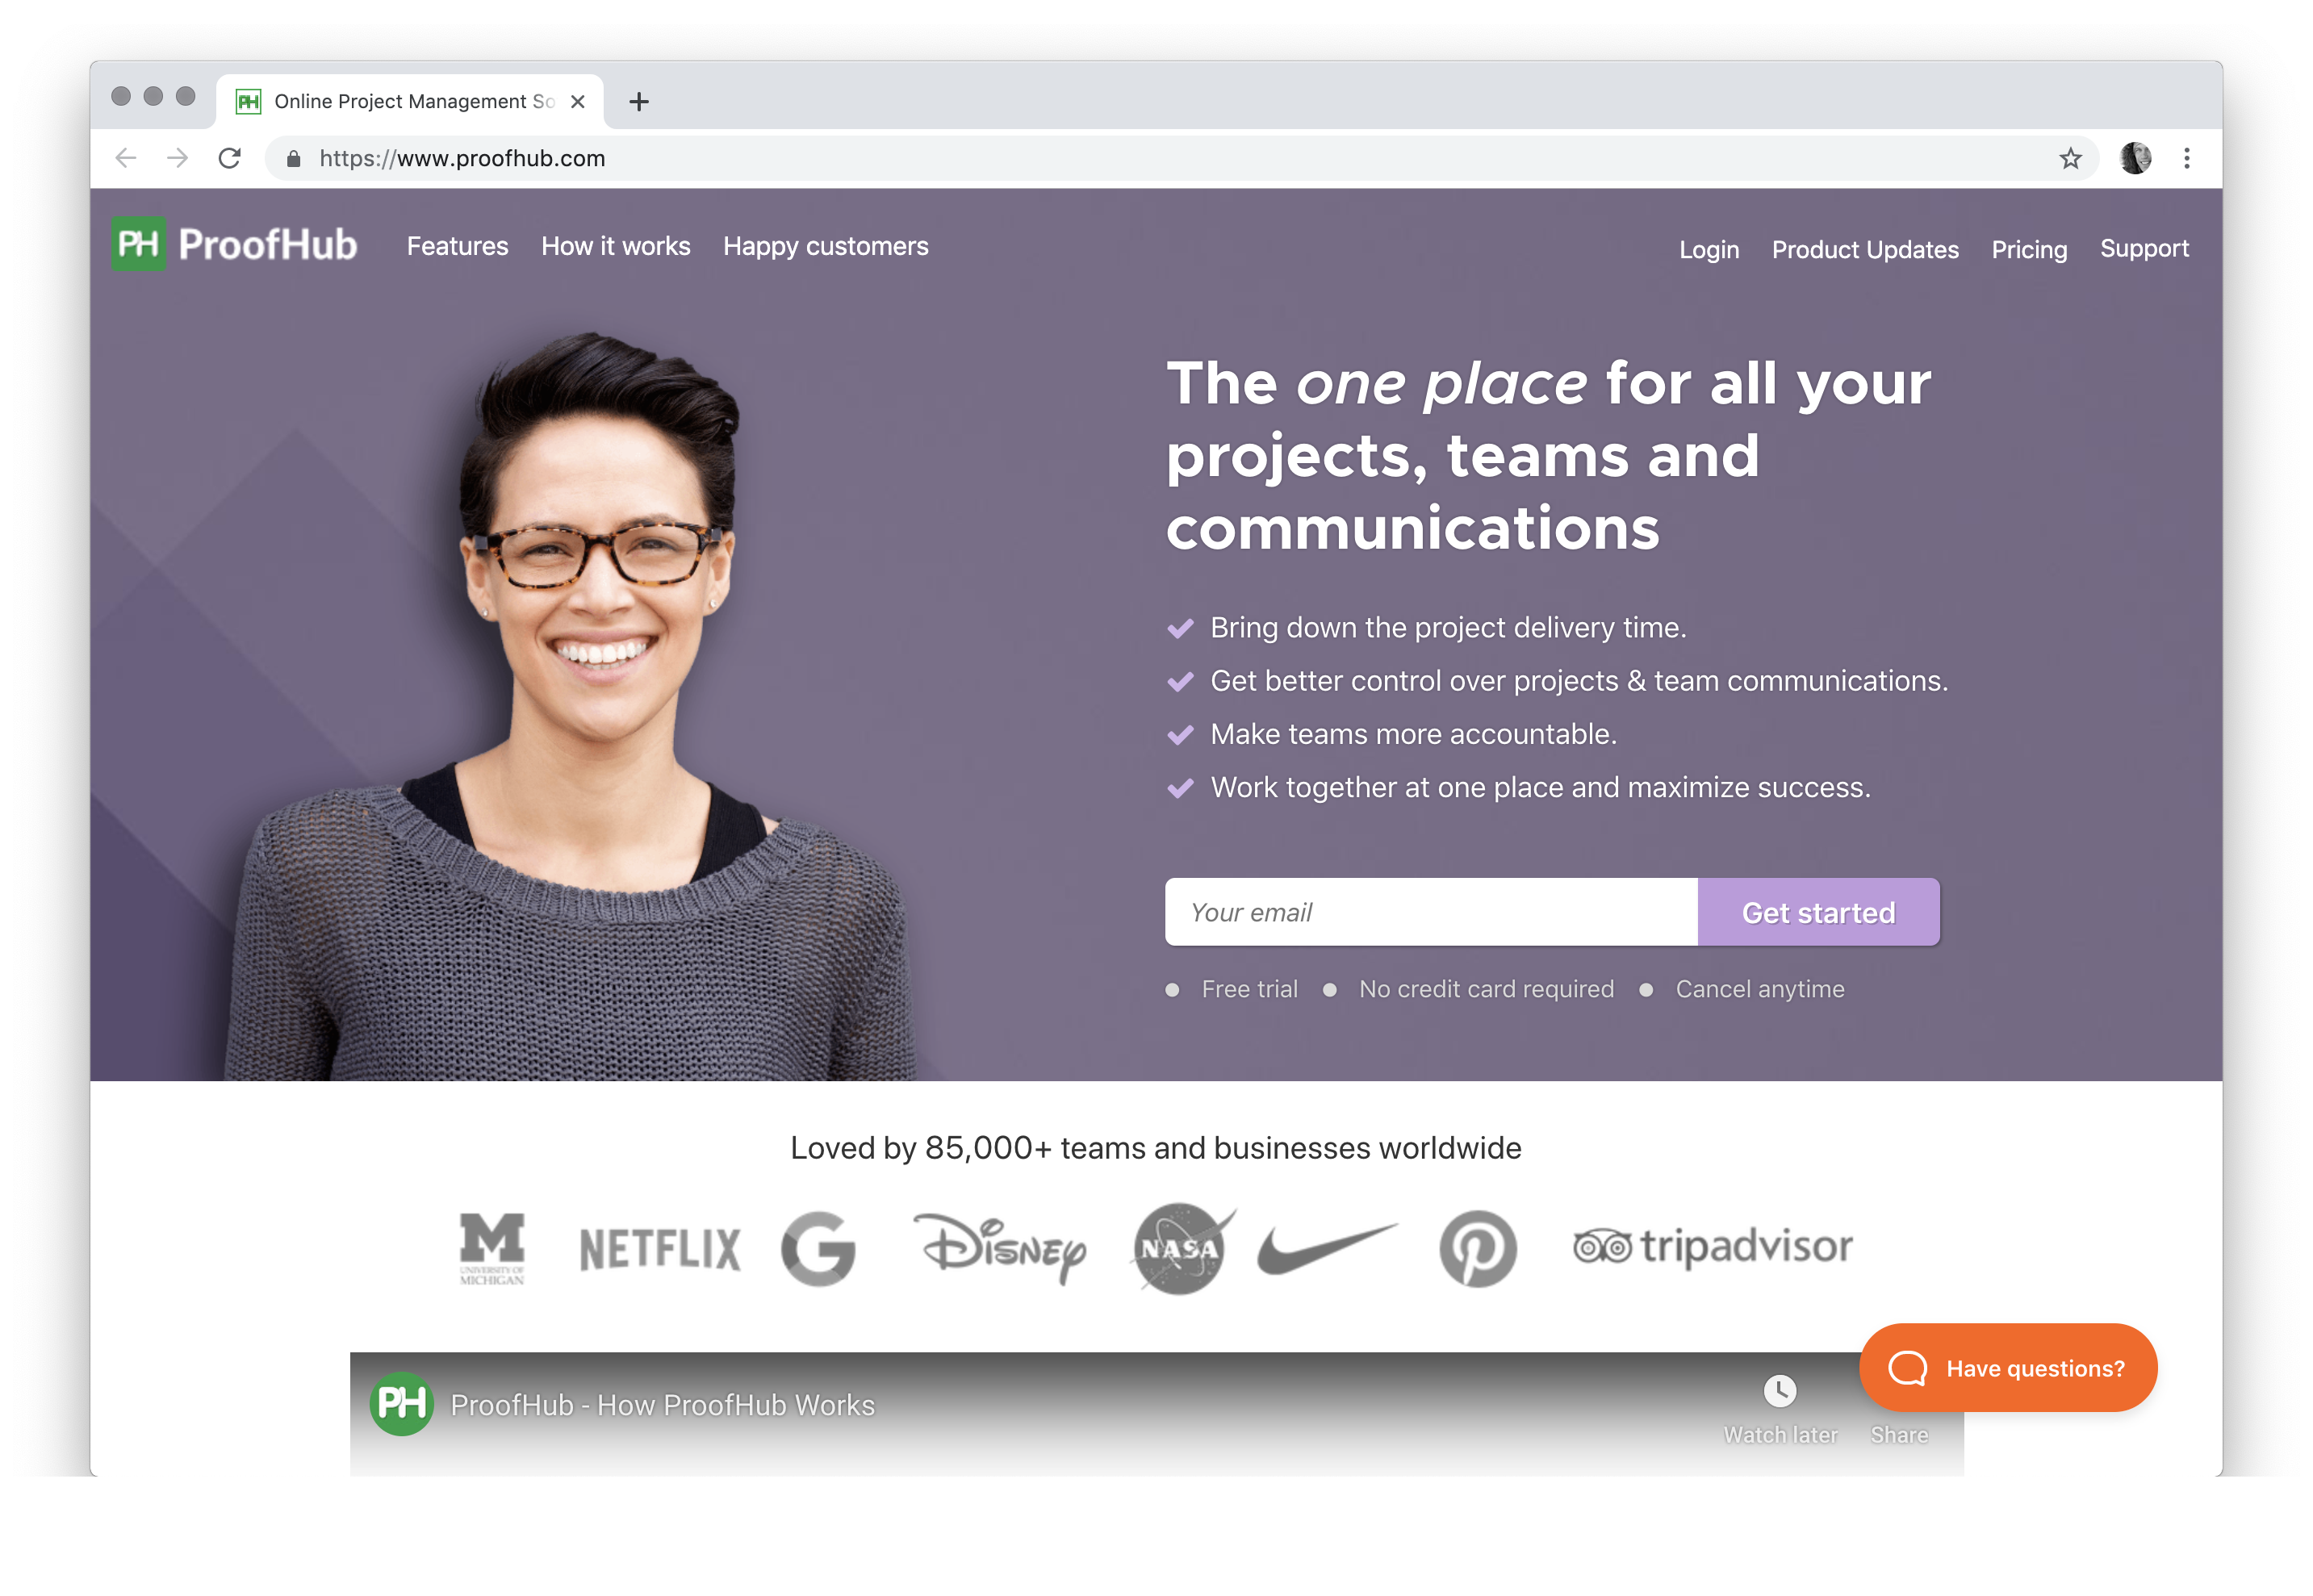 ProofHub - Online Project Management Software | Loved by 85,000+ Teams